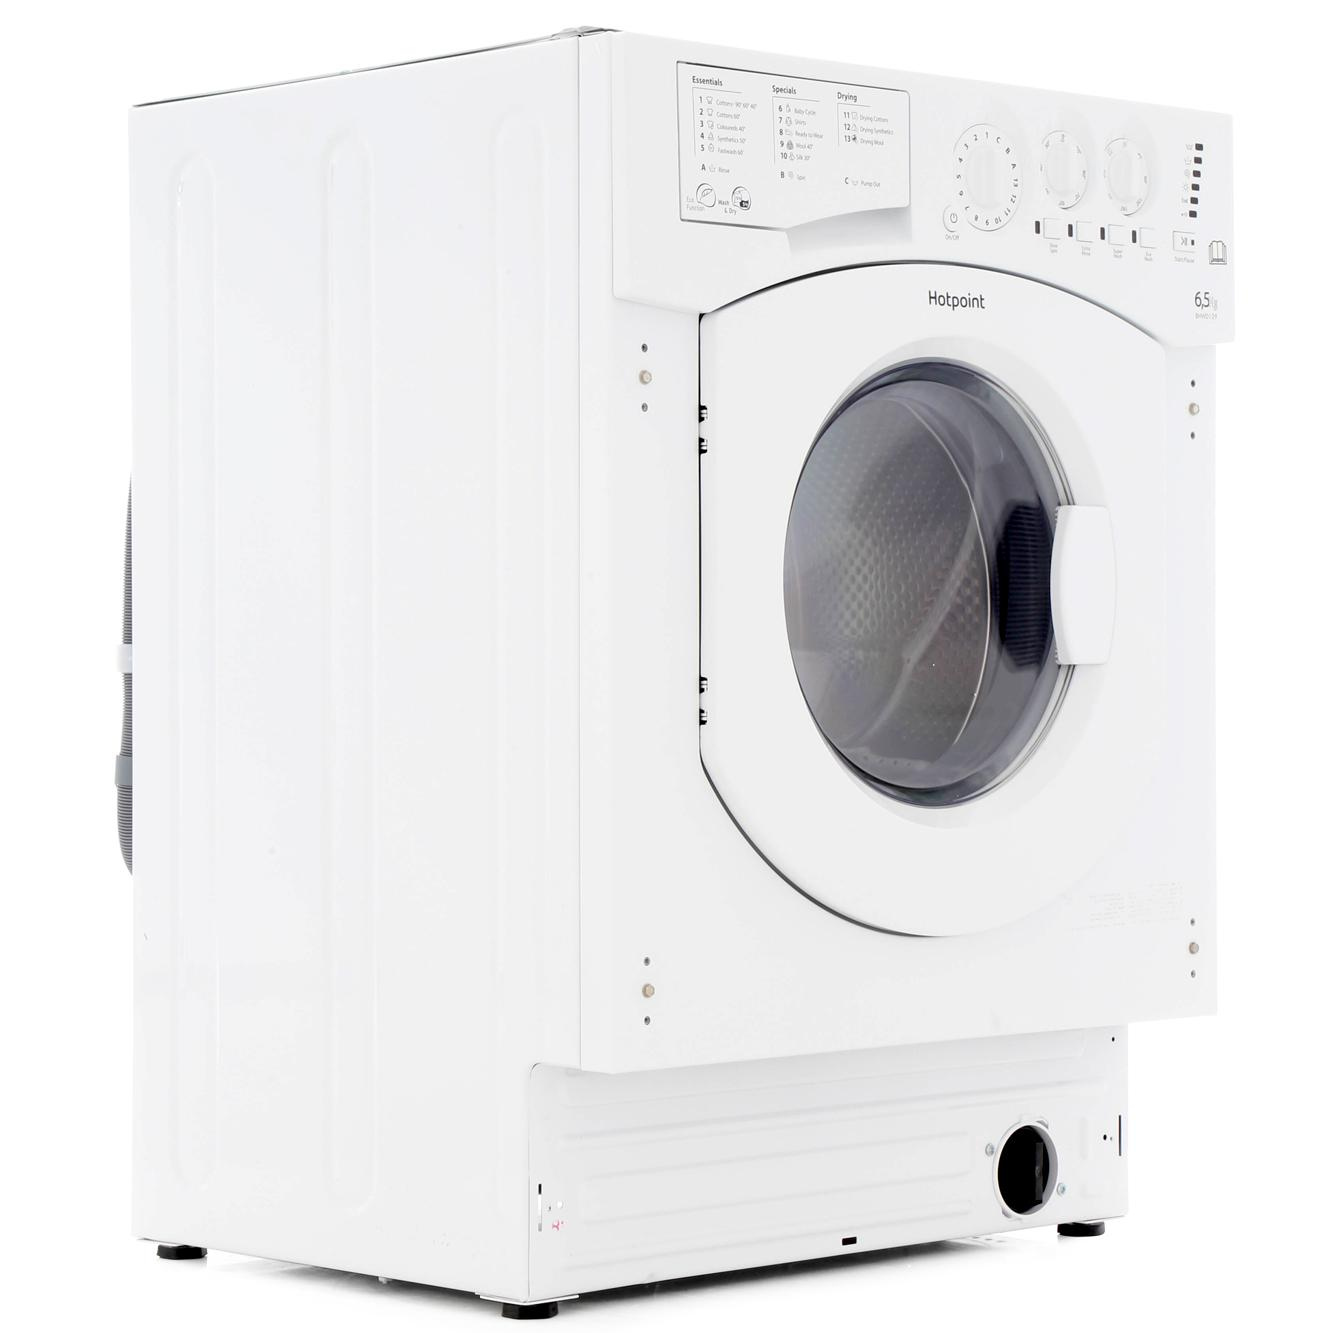 Hotpoint BHWD1291 Integrated Washer Dryer